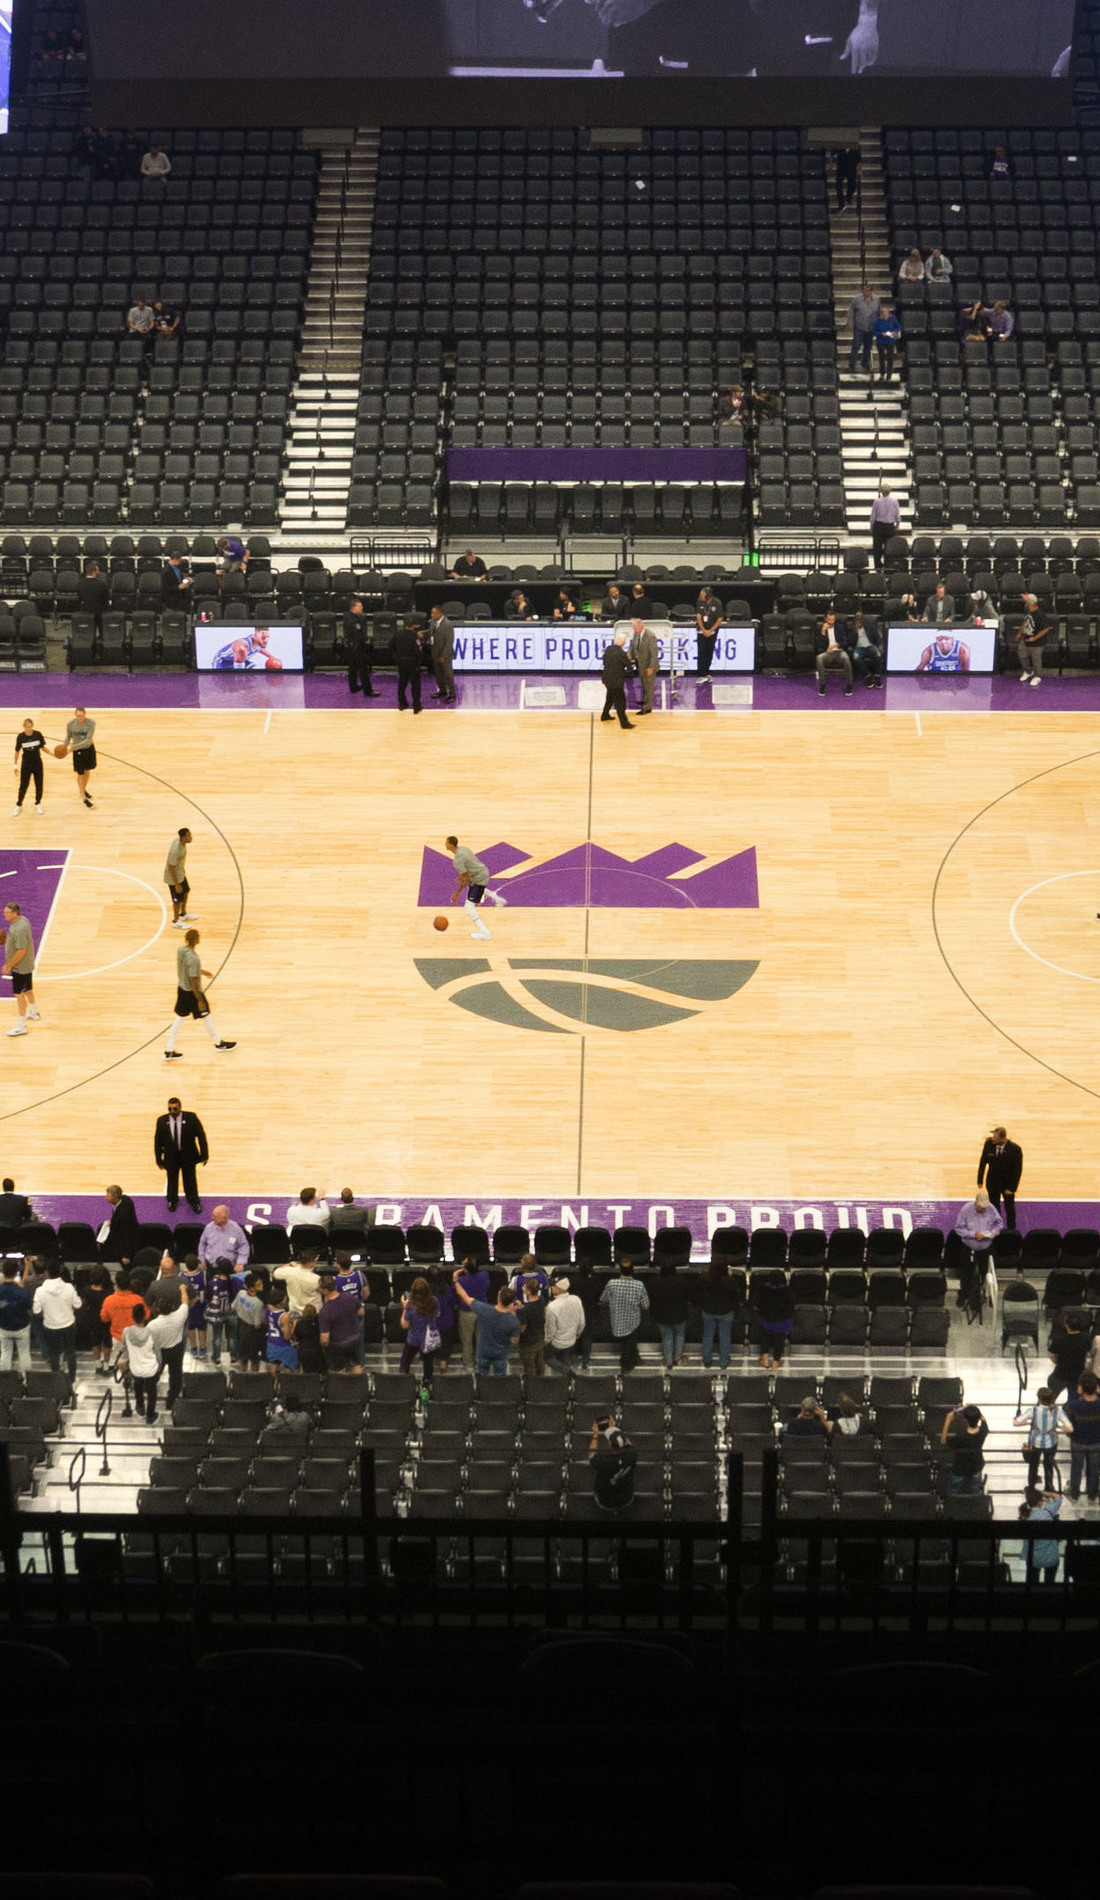 A Sacramento Kings live event